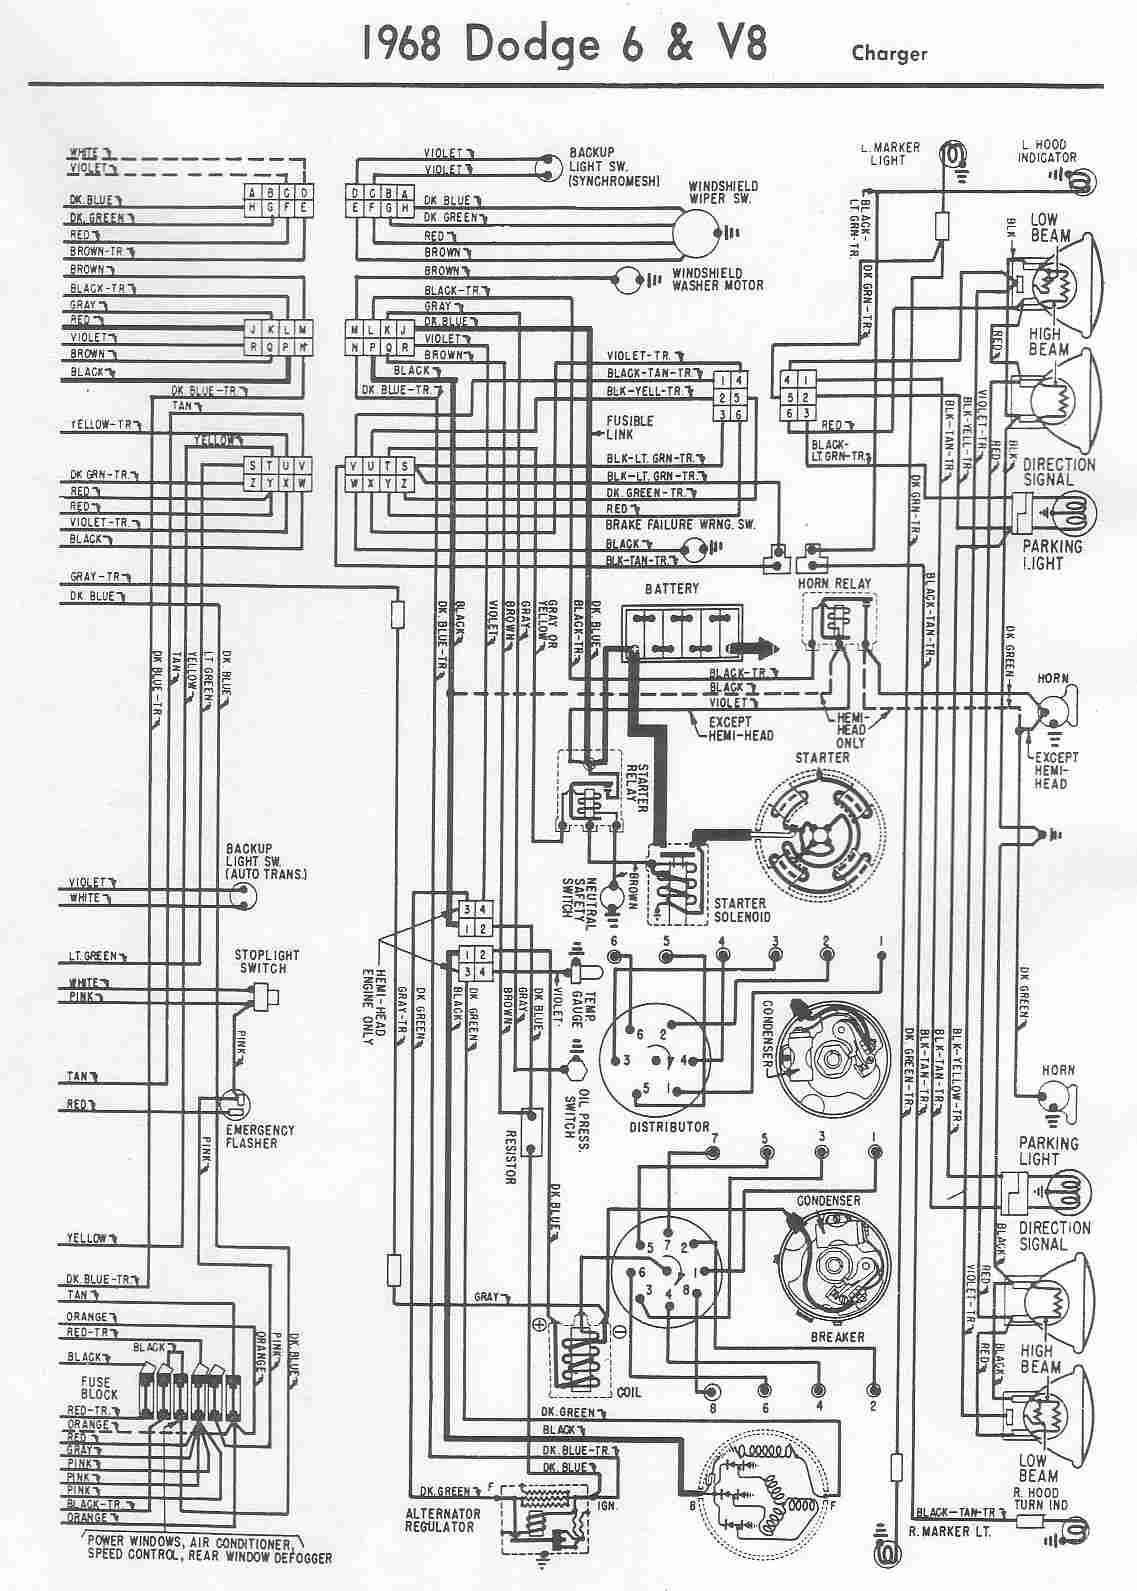 Honda Ignition Wiring Diagrams Simple Guide About Diagram 400ex 2009 Dodge Charger Best Site Harness Fourtrax